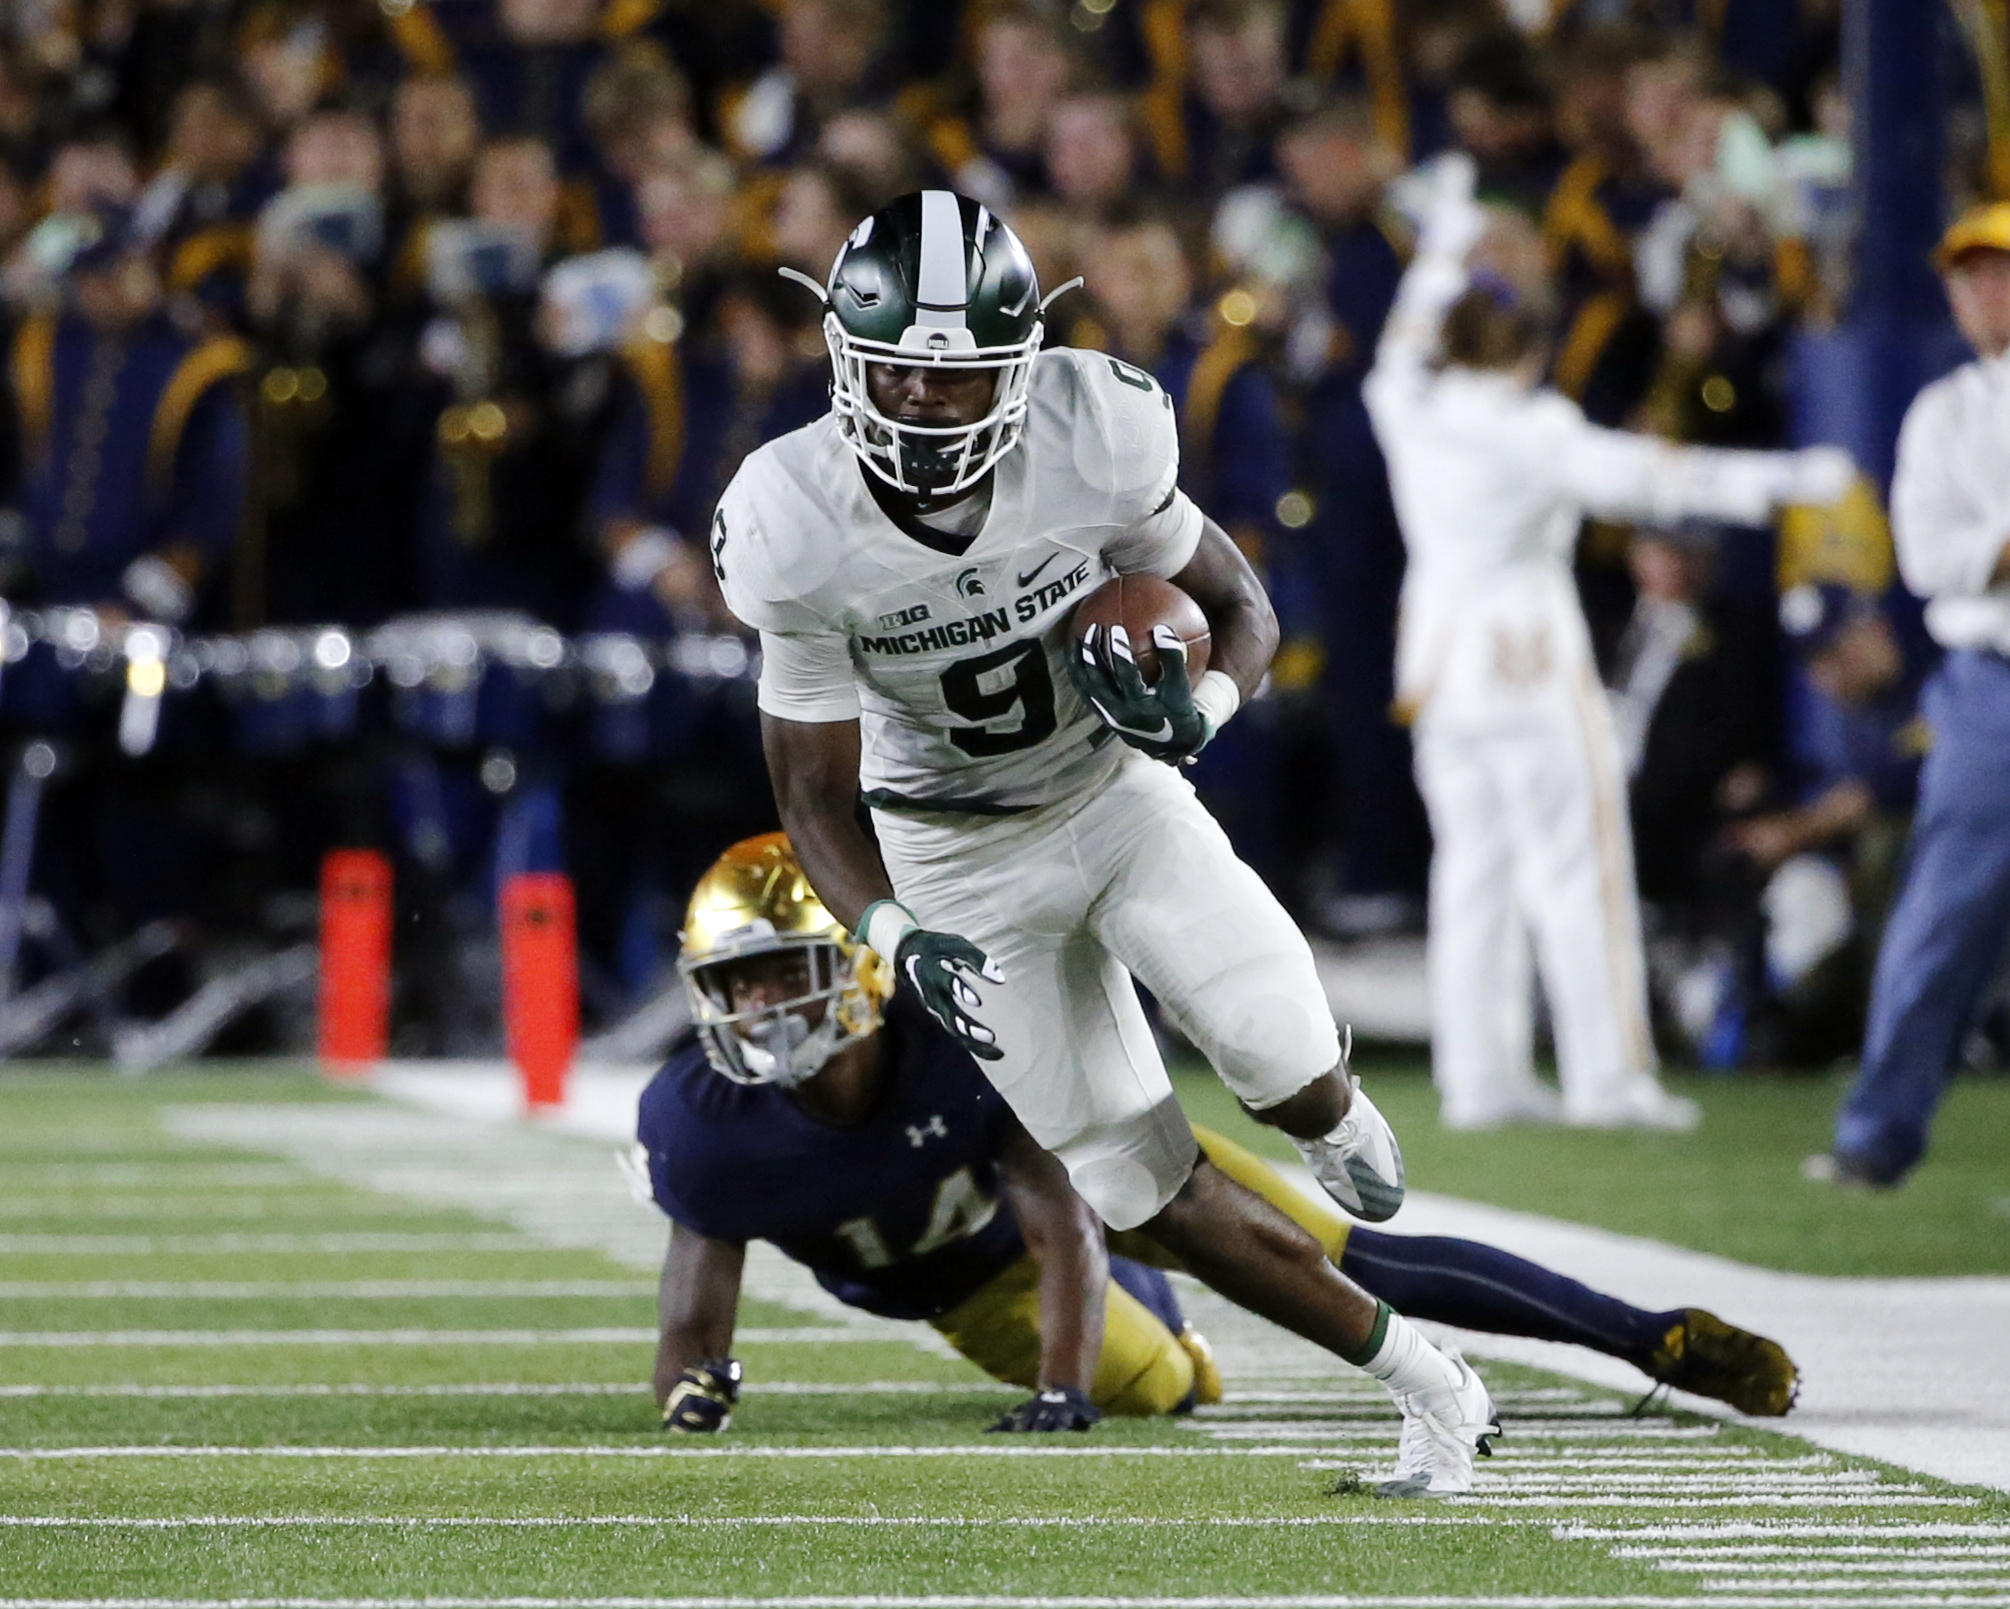 players football michigan state assault against corley charges freshman team field filed case ap spartans offense defense charged helping college